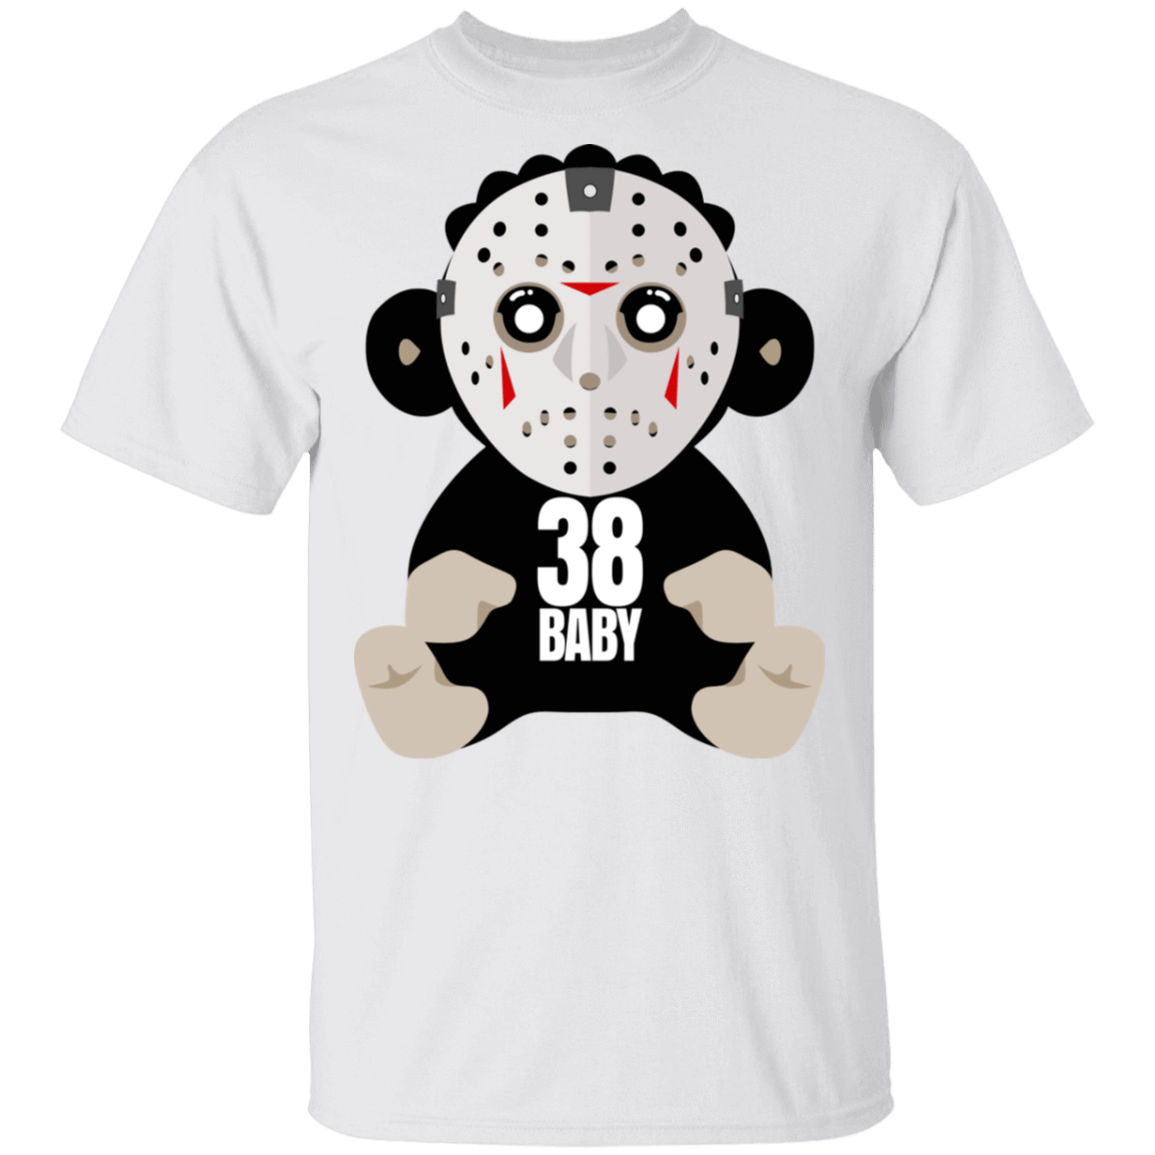 38 Baby Monkey Jason Voorhees T-Shirts, Hoodies 1049-9974-81934115-48300 - Tee Ript